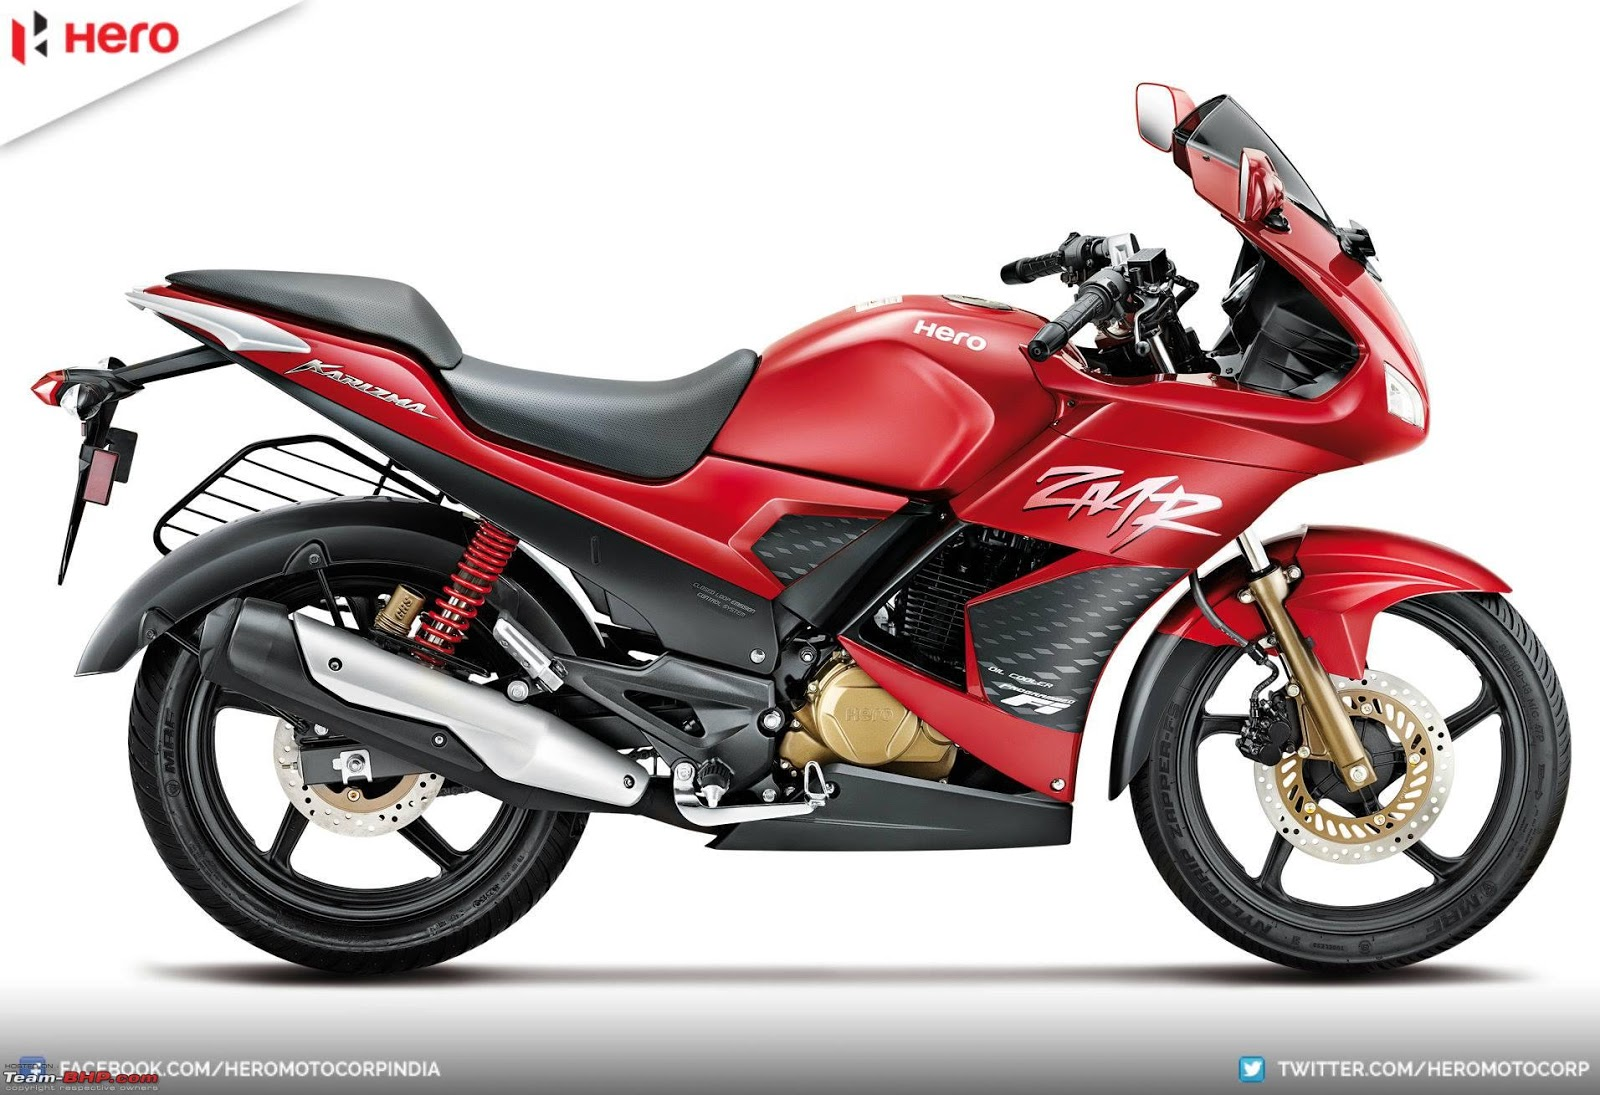 latest cars and bikes wallpapers images photos: top 39 hero bikes